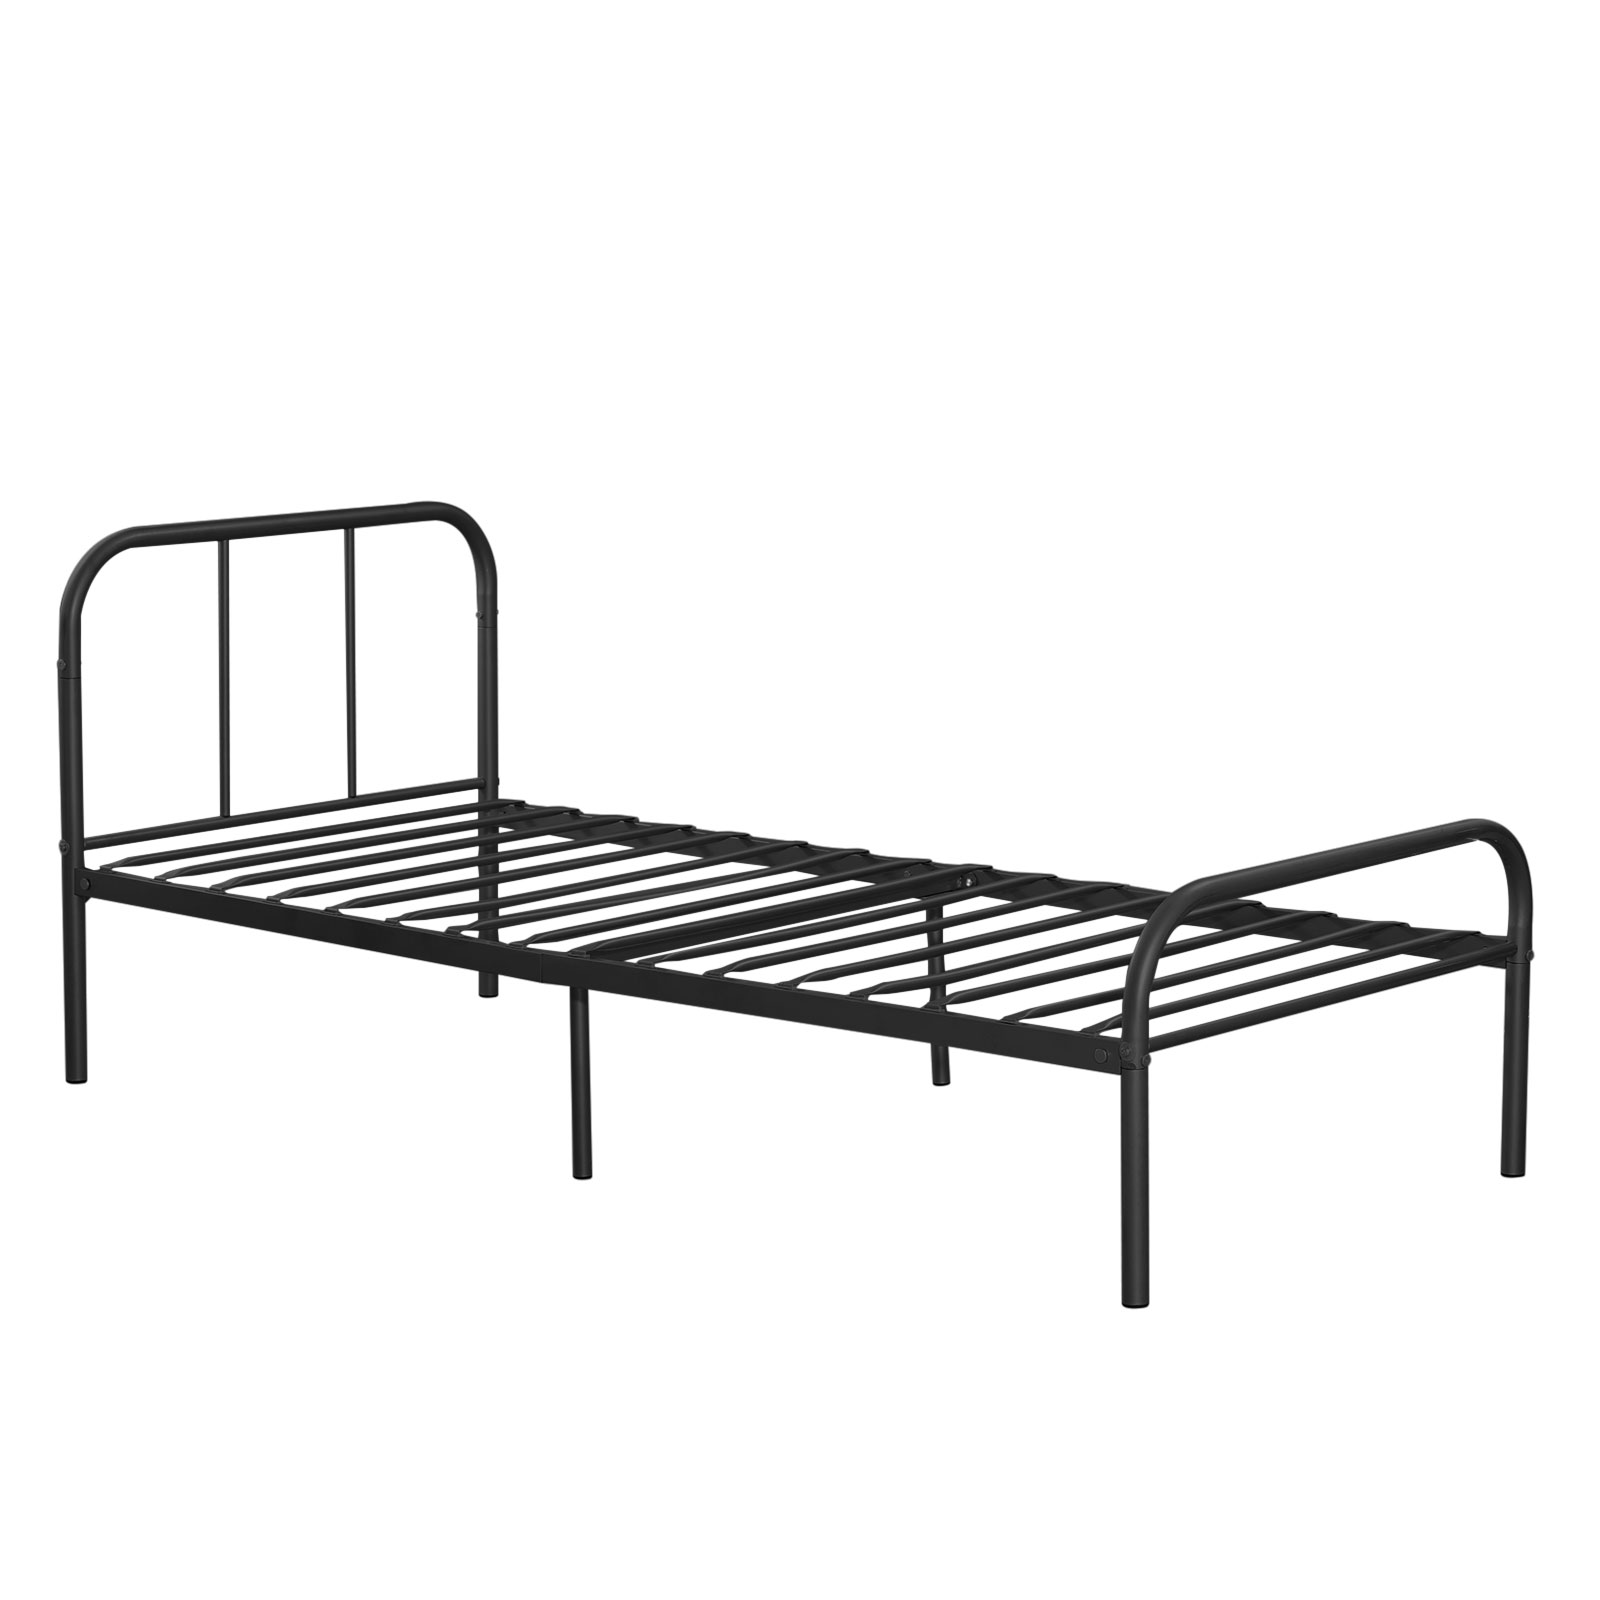 Metal Platform Bed Frame Twin Size Bedroom Heavy Duty